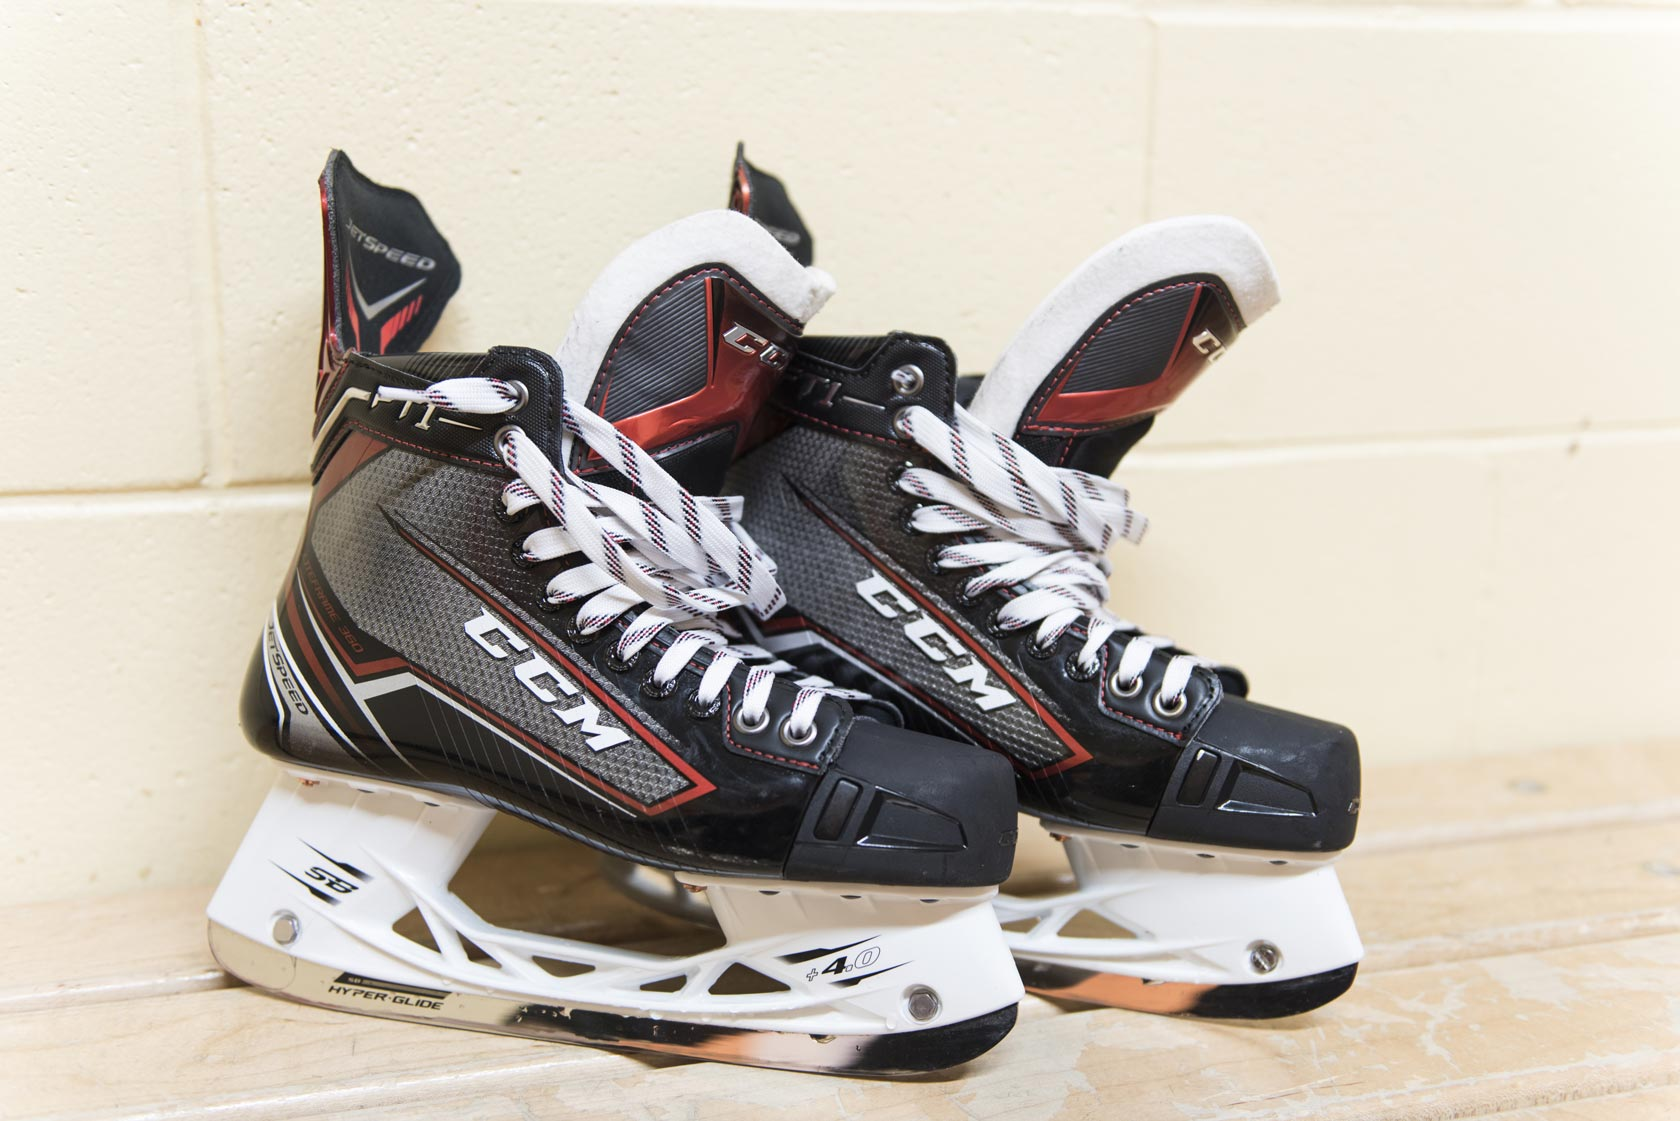 CCM JetSpeed FT1 Hockey Skates | Source For Sports